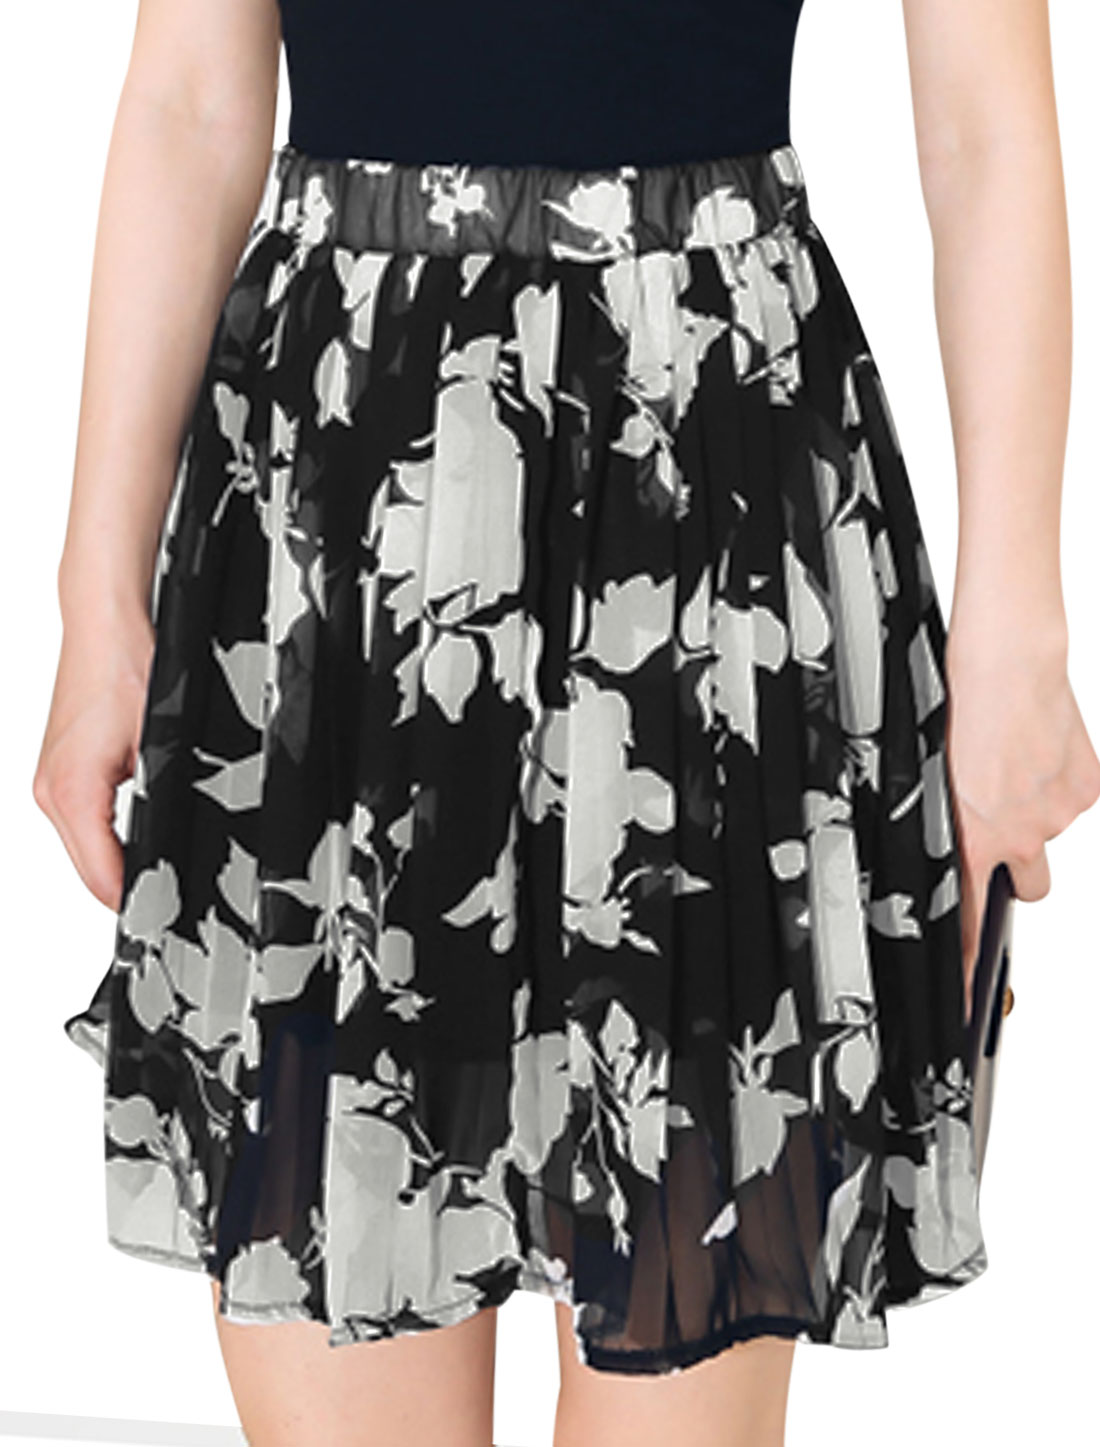 Ladies Mid Rise Elastic Waist Floral Print Casual Skirt Black White XS